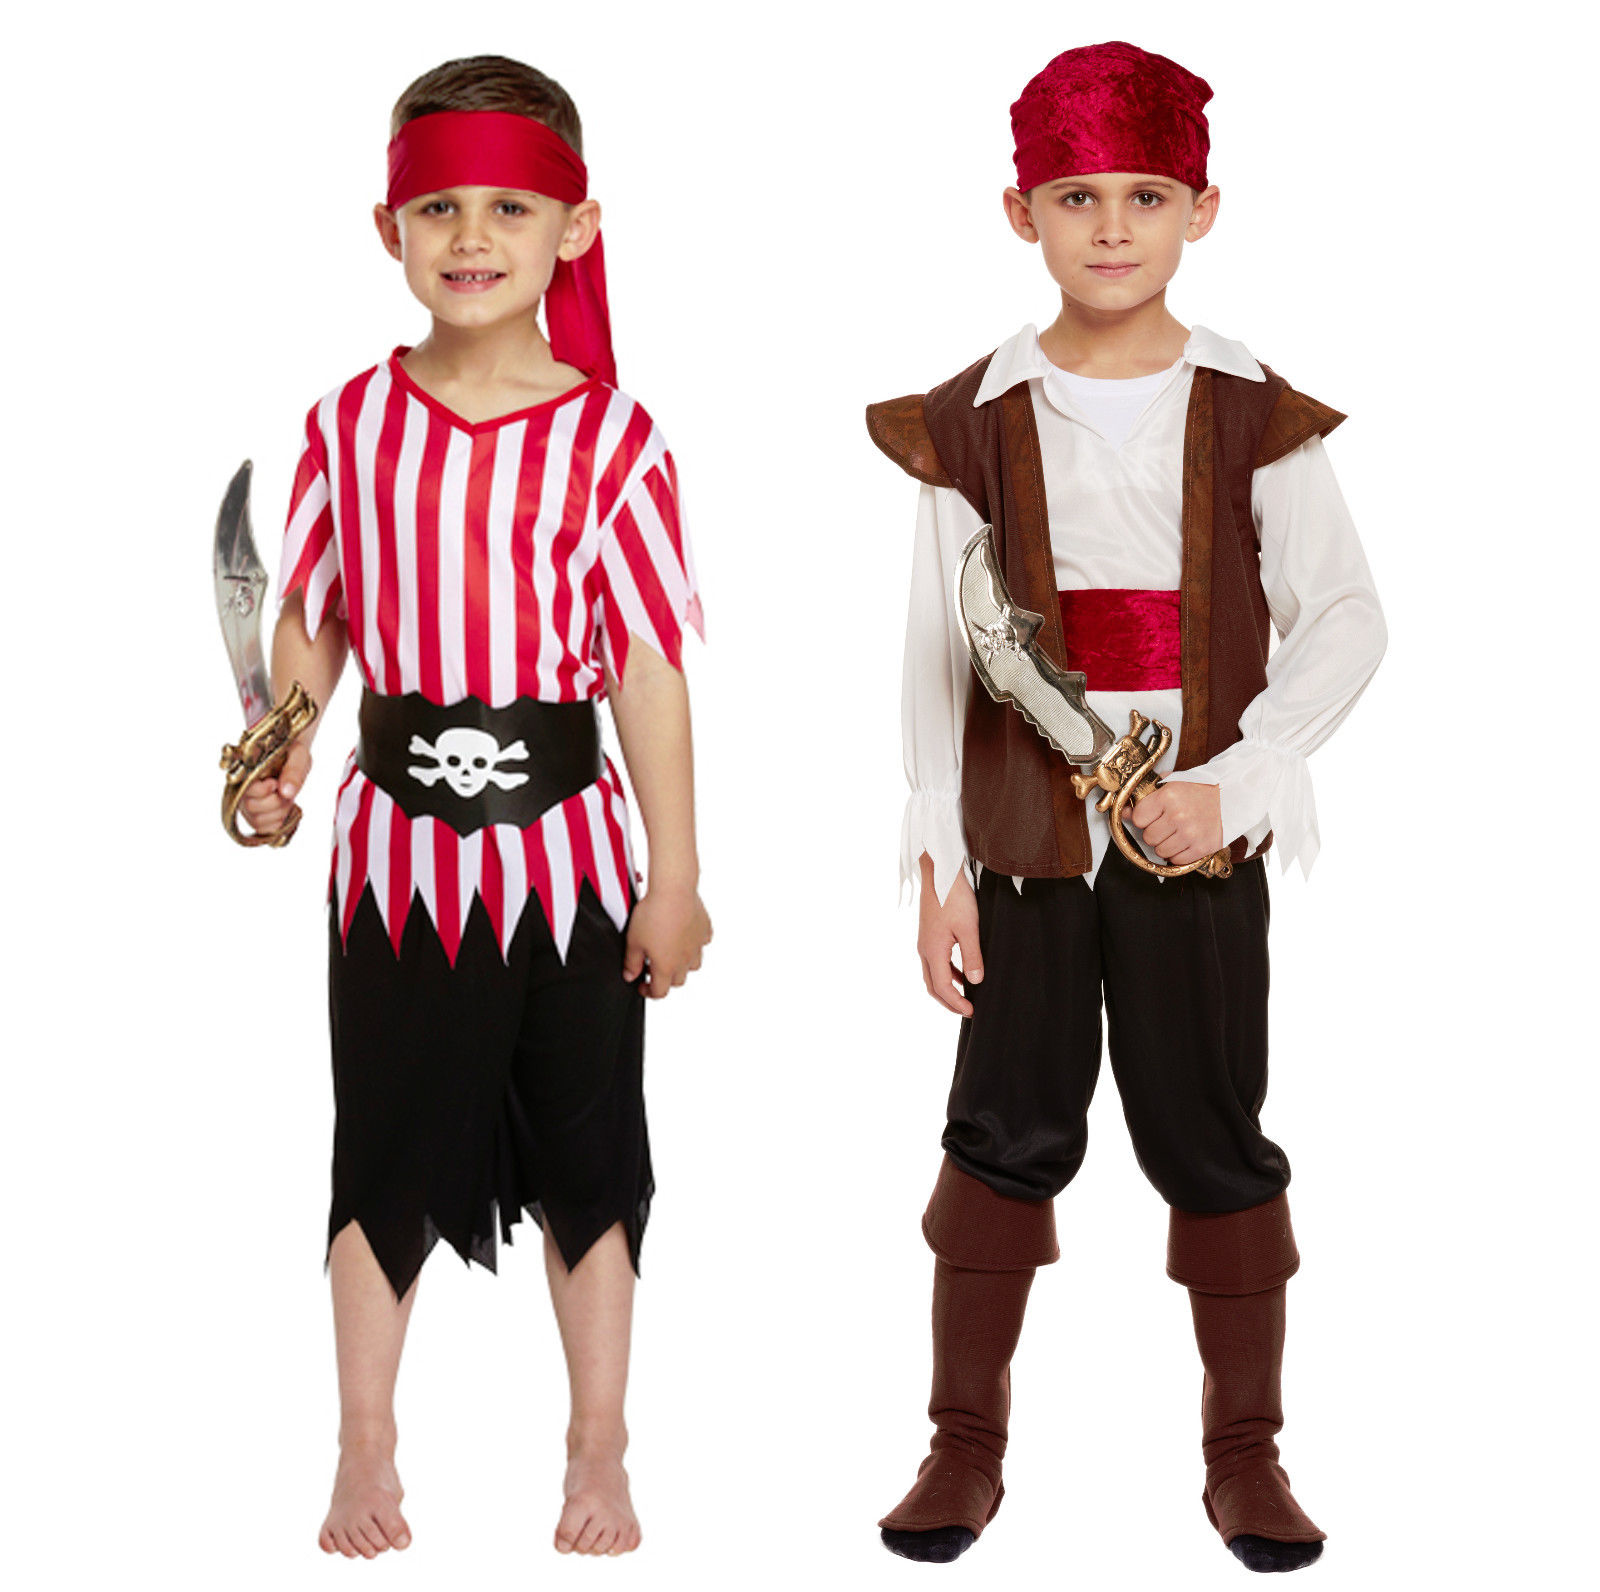 Childs Pirate Costume Boys Caribbean Fancy Dress Captain Hook Book Week Outfit